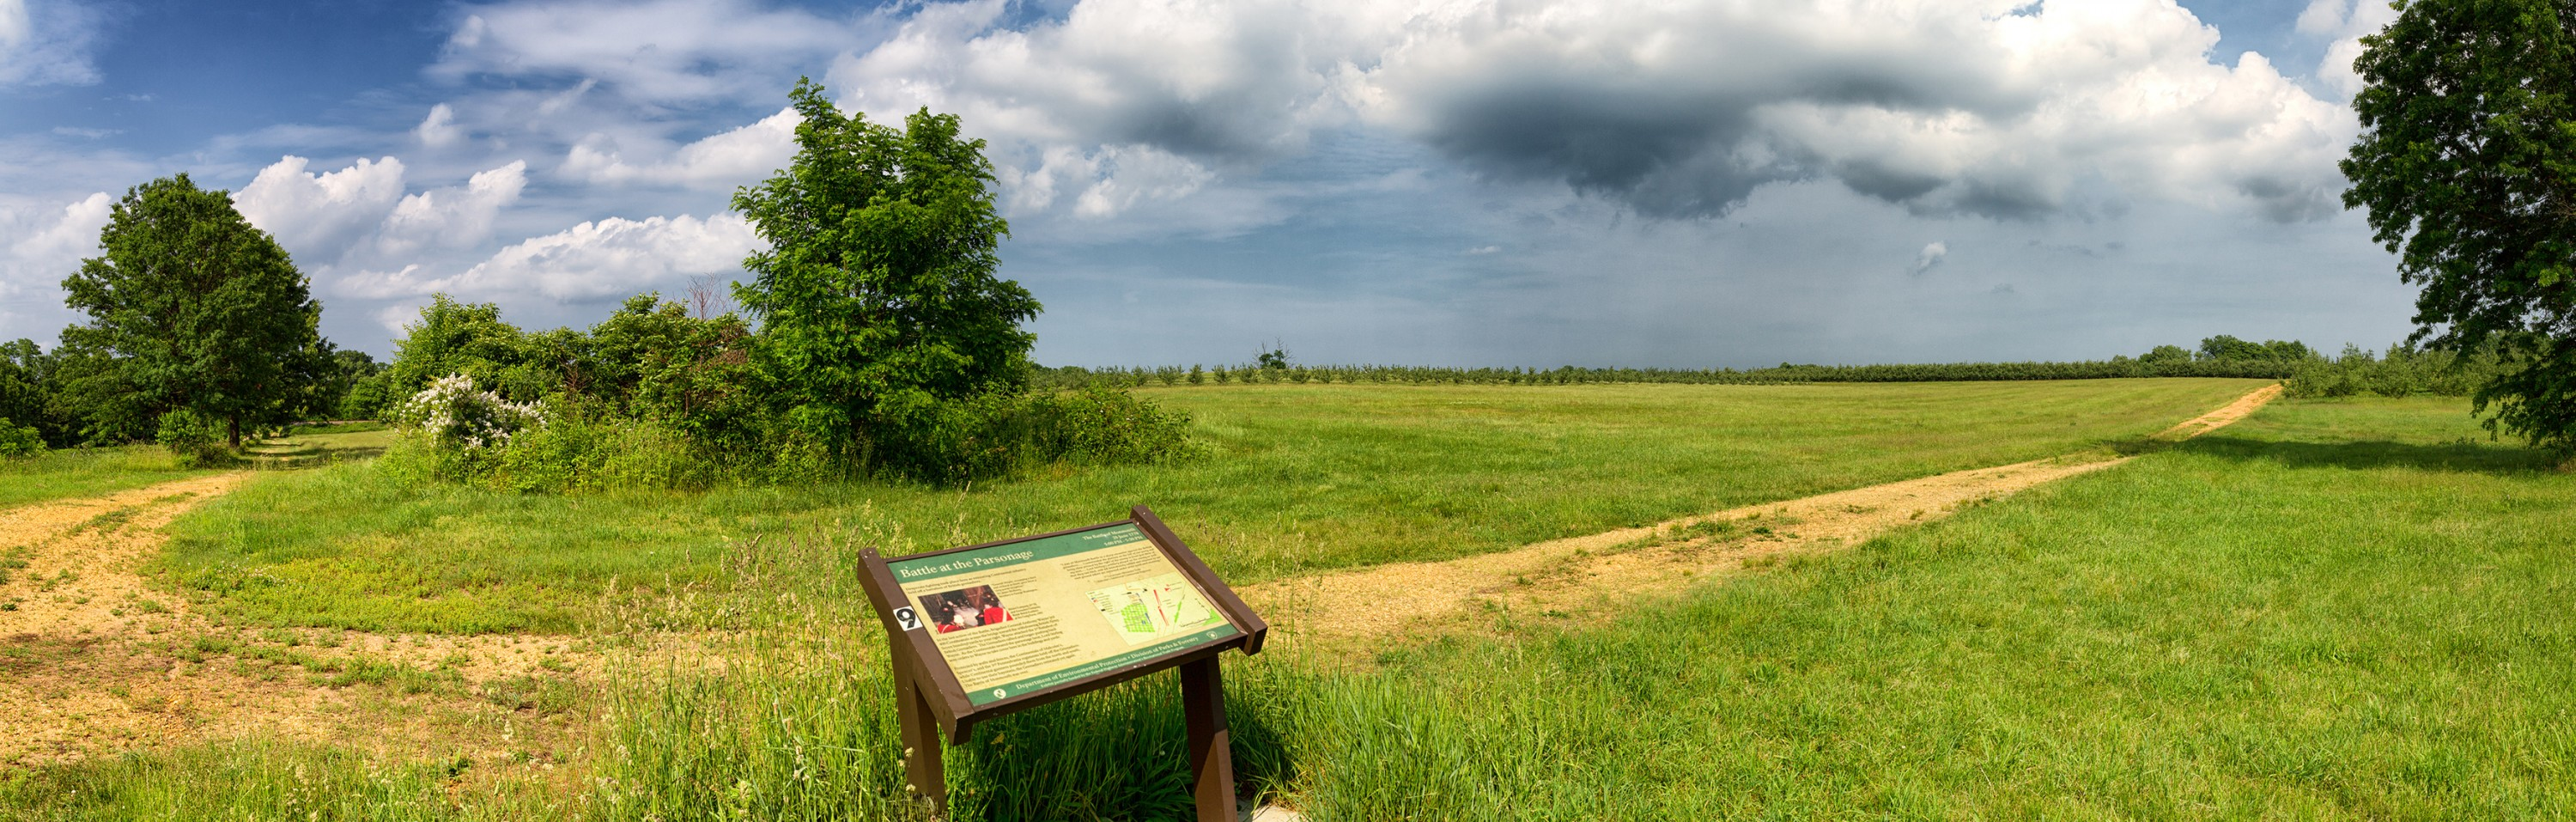 View of the Monmouth Battlefield.  The Parsonage, located roughly in the clump of trees on the left, was the scene of heavy fighting in the latter stages of the battle. (Rob Shenk - MVLA)